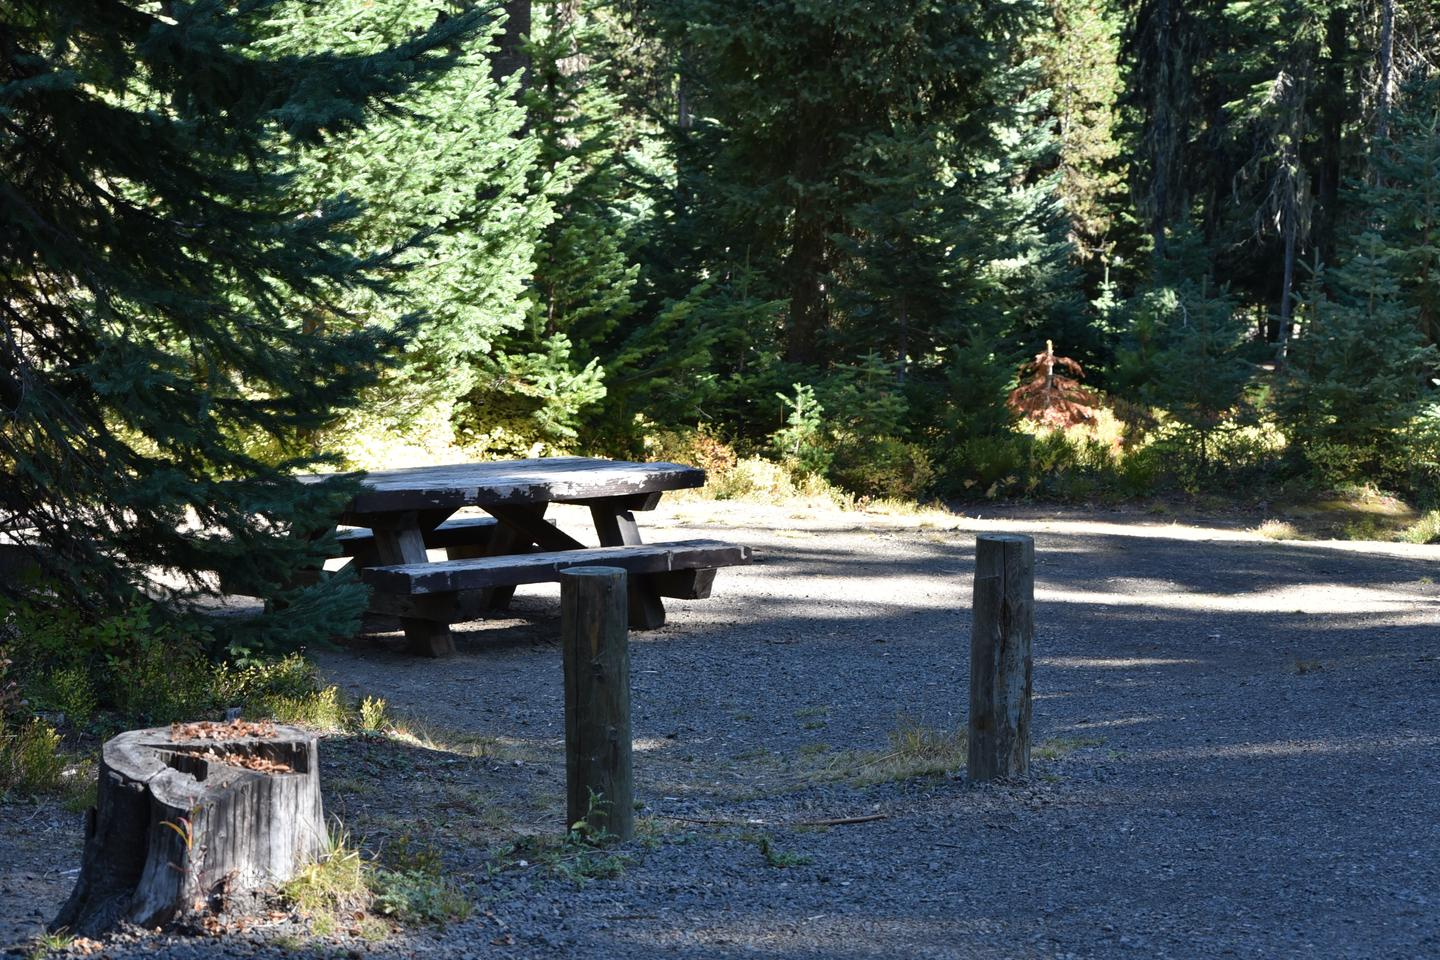 campsite parking area and picnic tableJubilee Lake Campground site #29